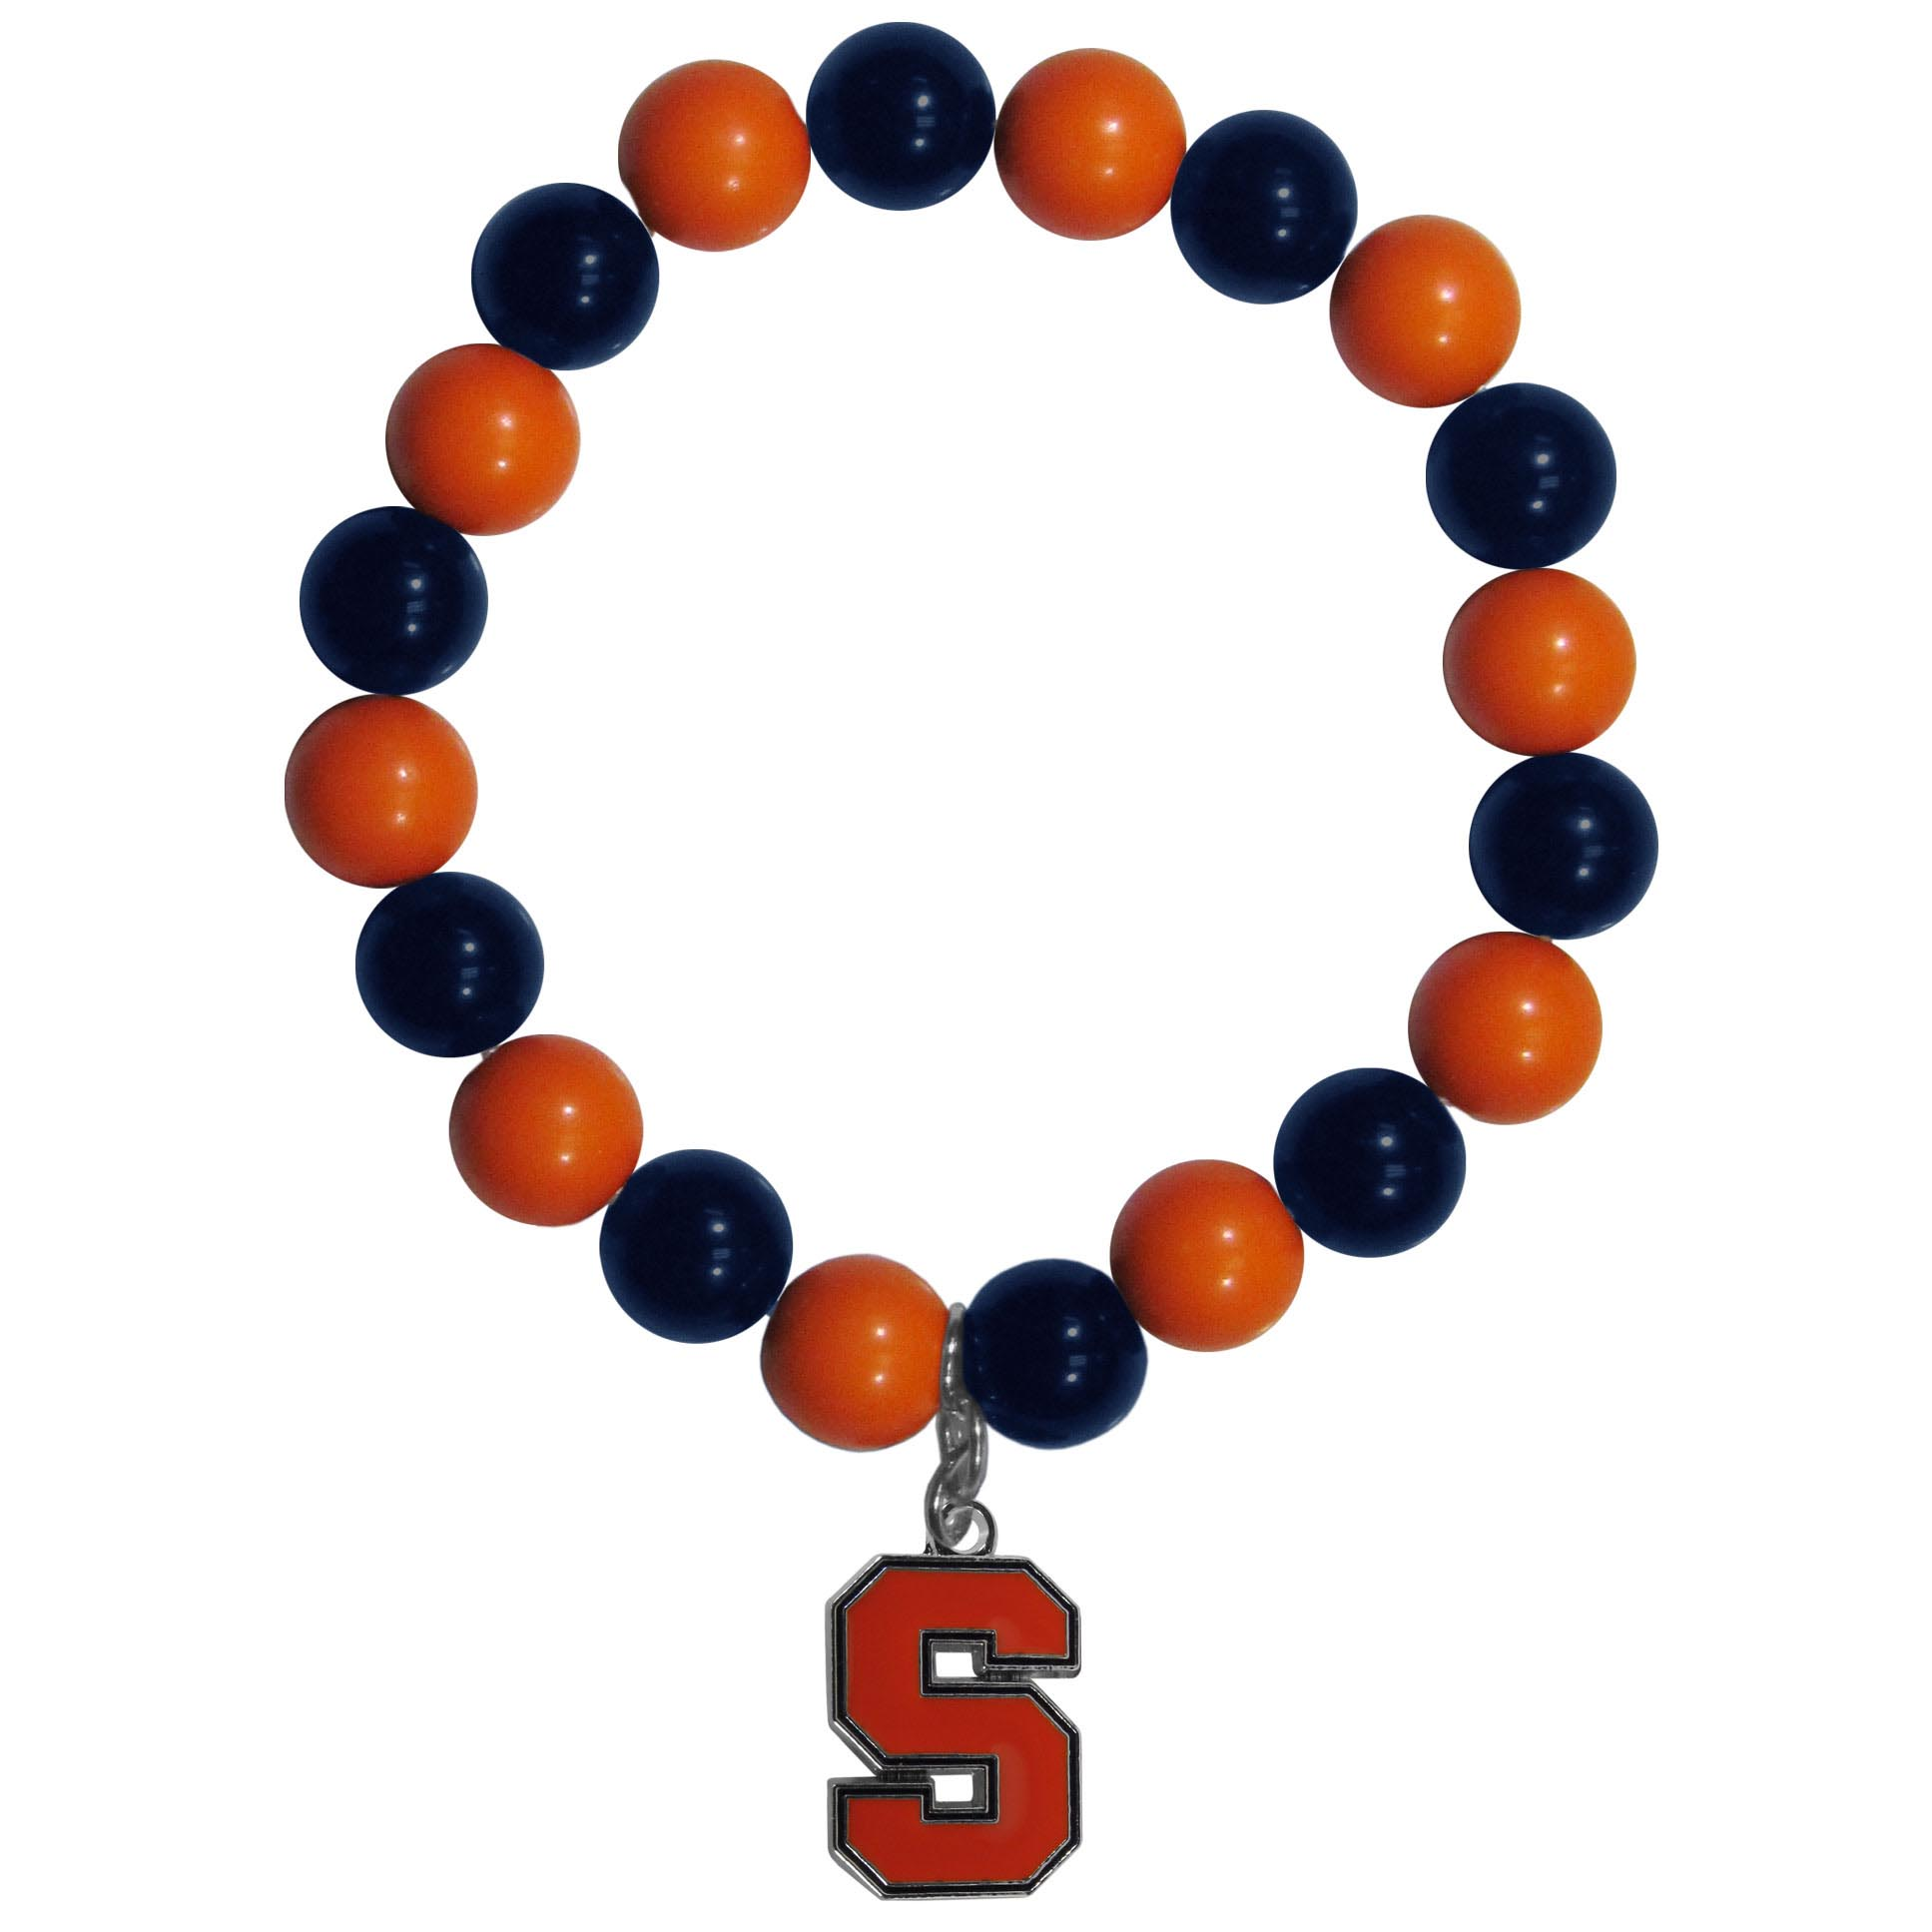 Syracuse Orange Fan Bead Bracelet - Flash your Syracuse Orange spirit with this bright stretch bracelet. This new bracelet features multicolored team beads on stretch cord with a nickel-free enameled chrome team charm. This bracelet adds the perfect pop of color to your game day accessories.